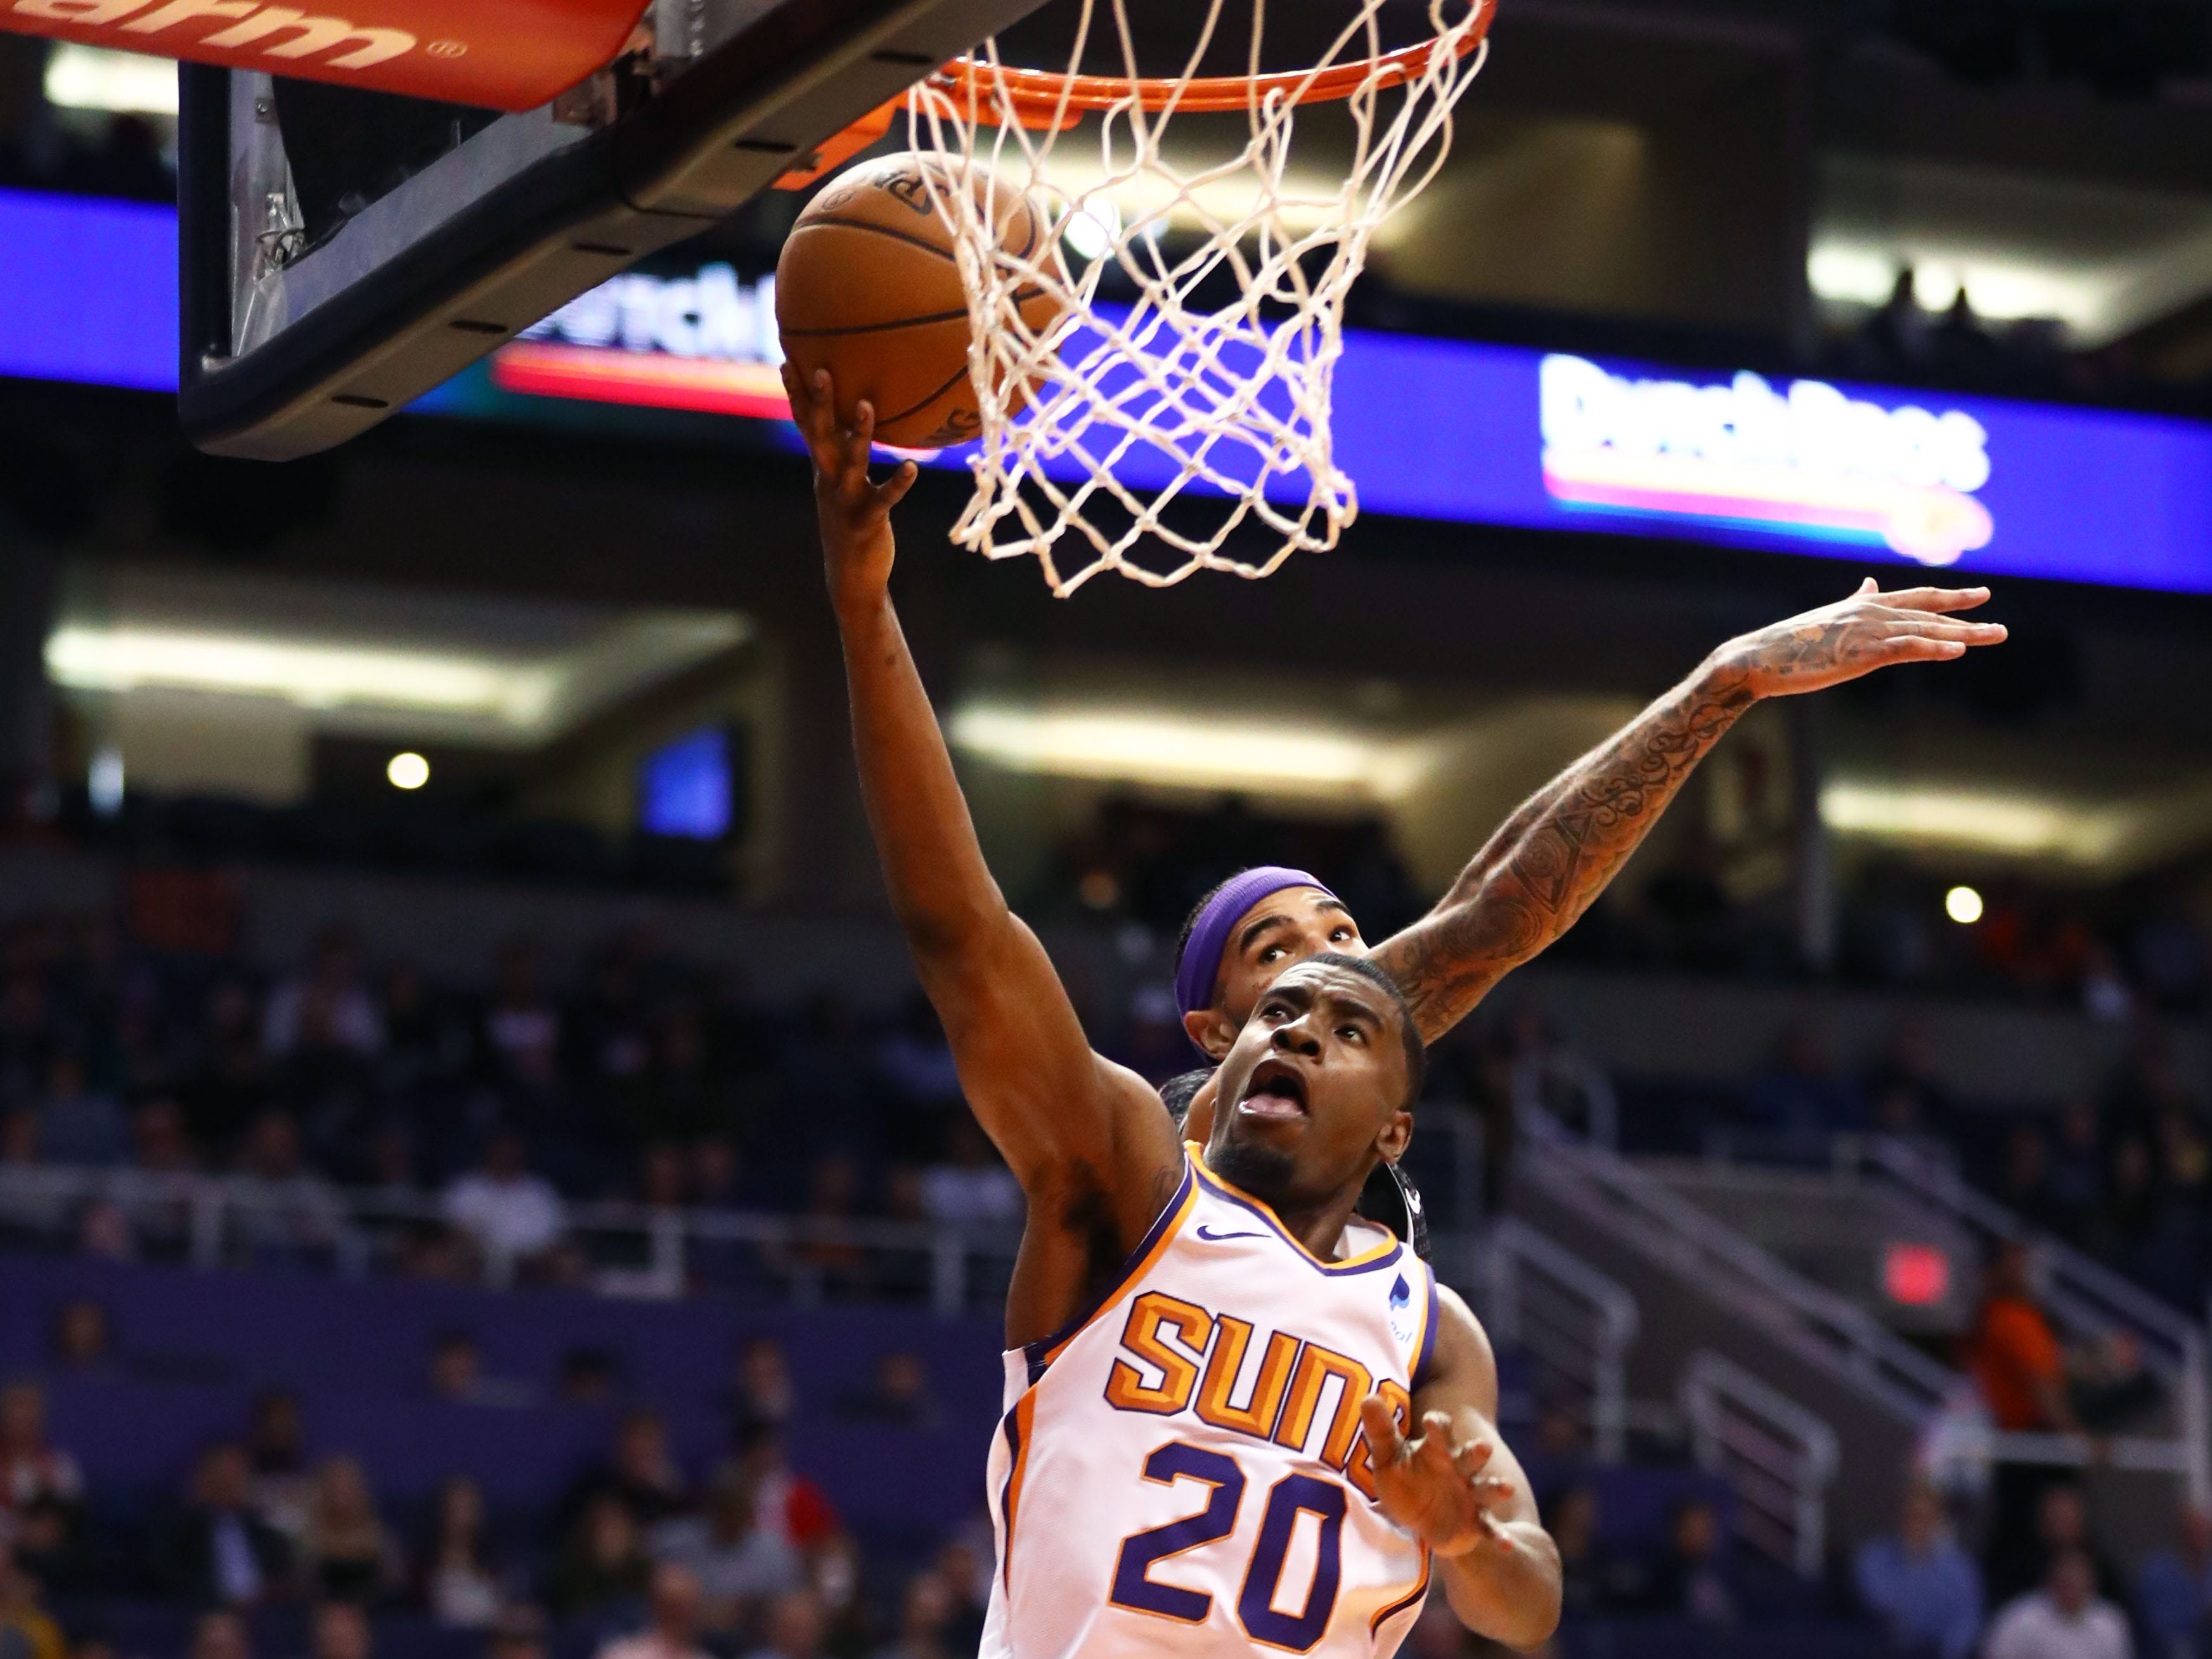 Jan 8, 2019; Phoenix, AZ, USA; Phoenix Suns forward Josh Jackson drives to the basket against the Sacramento Kings in the first half at Talking Stick Resort Arena. Mandatory Credit: Mark J. Rebilas-USA TODAY Sports